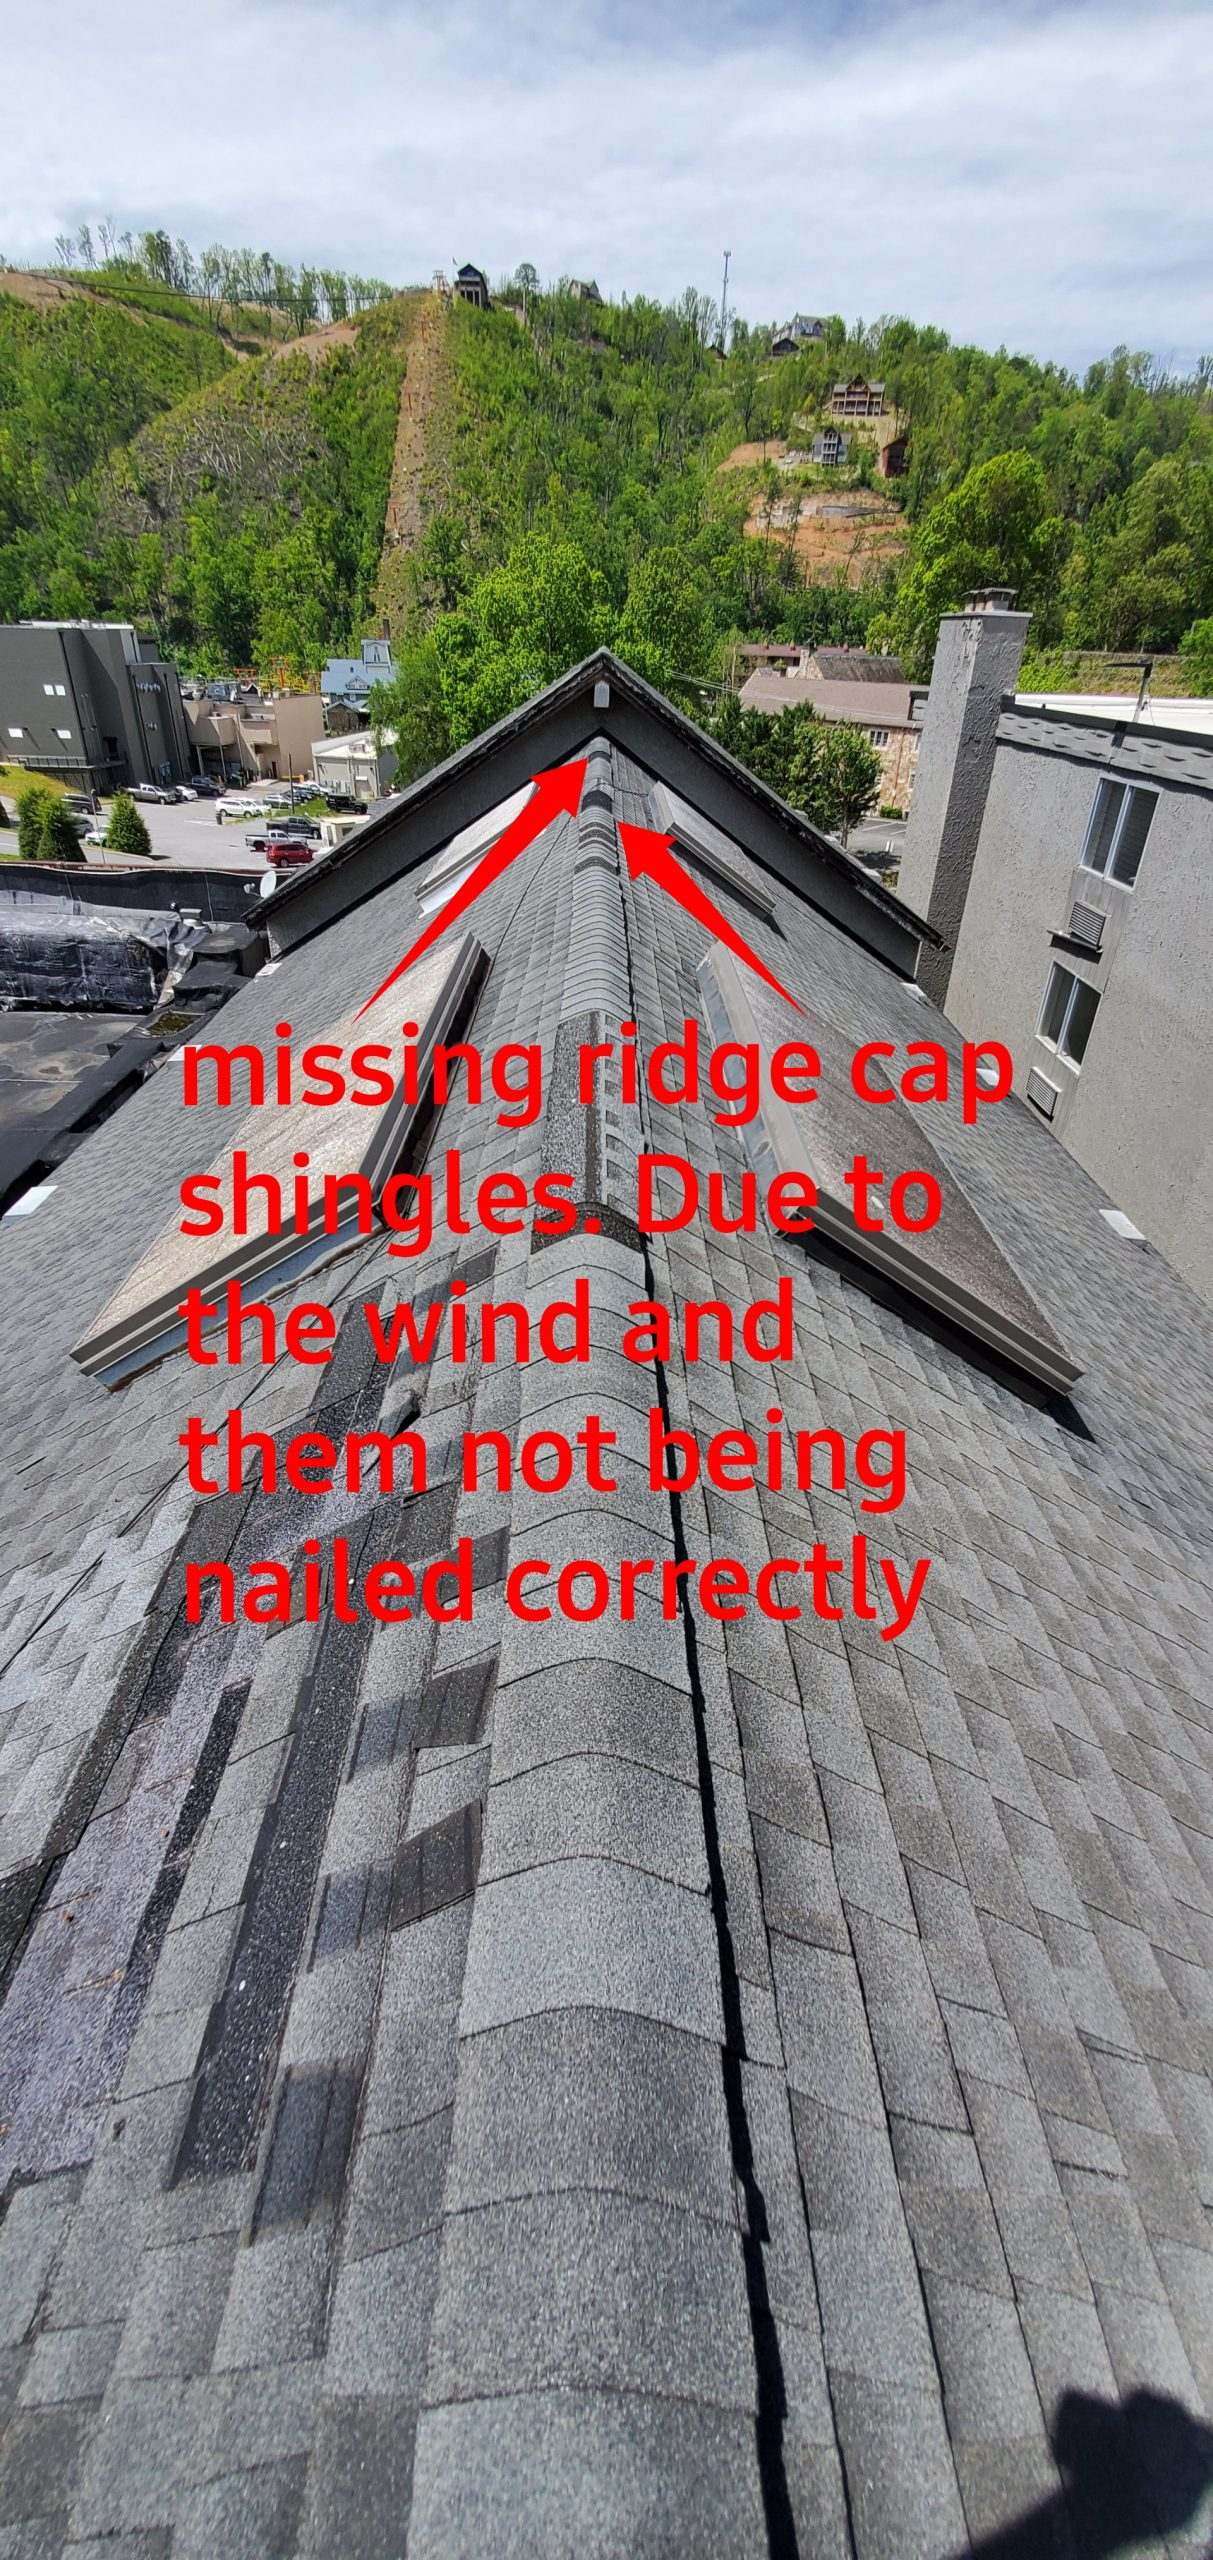 This is a vew of the ridge of the roof with missing ridge cap shingles.